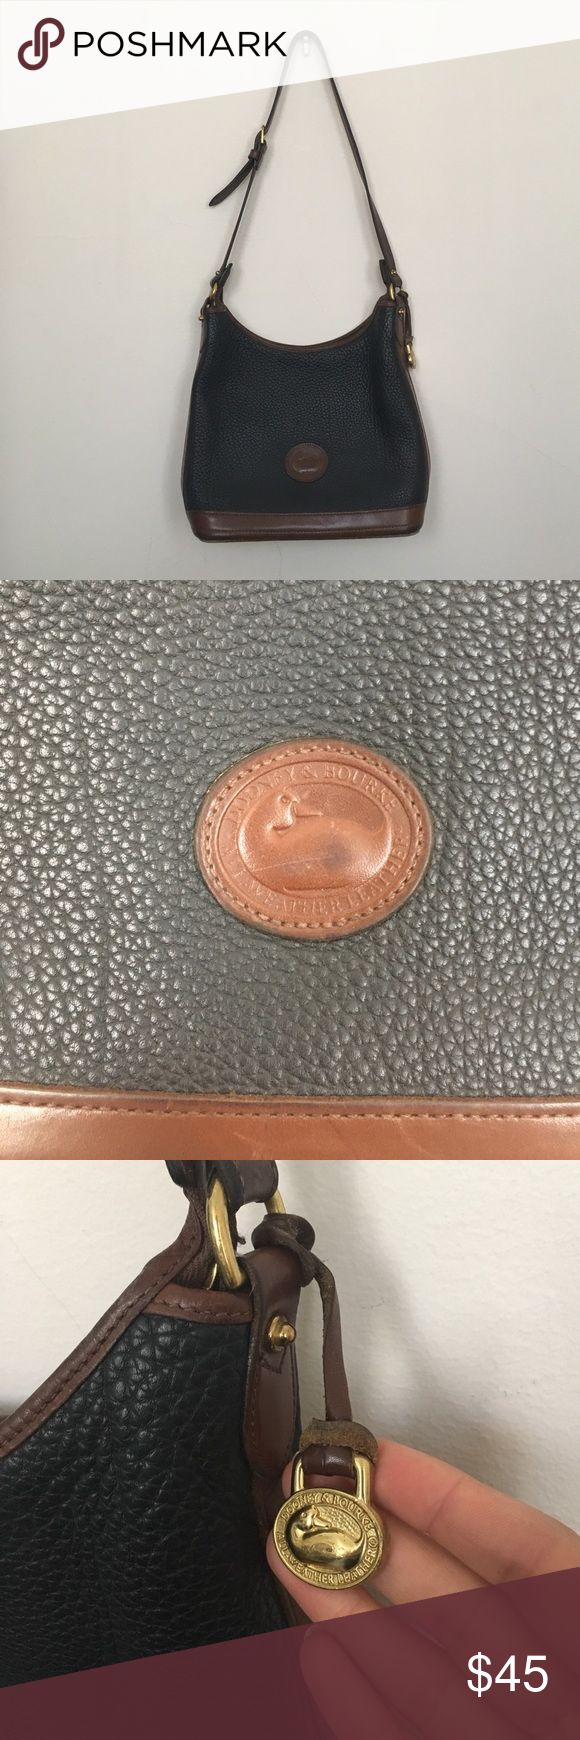 Vintage Dooney and Bourke navy purse The softness of the leather is incredible! In beautiful vintage condition.  Please see photos for condition. Dooney & Bourke Bags